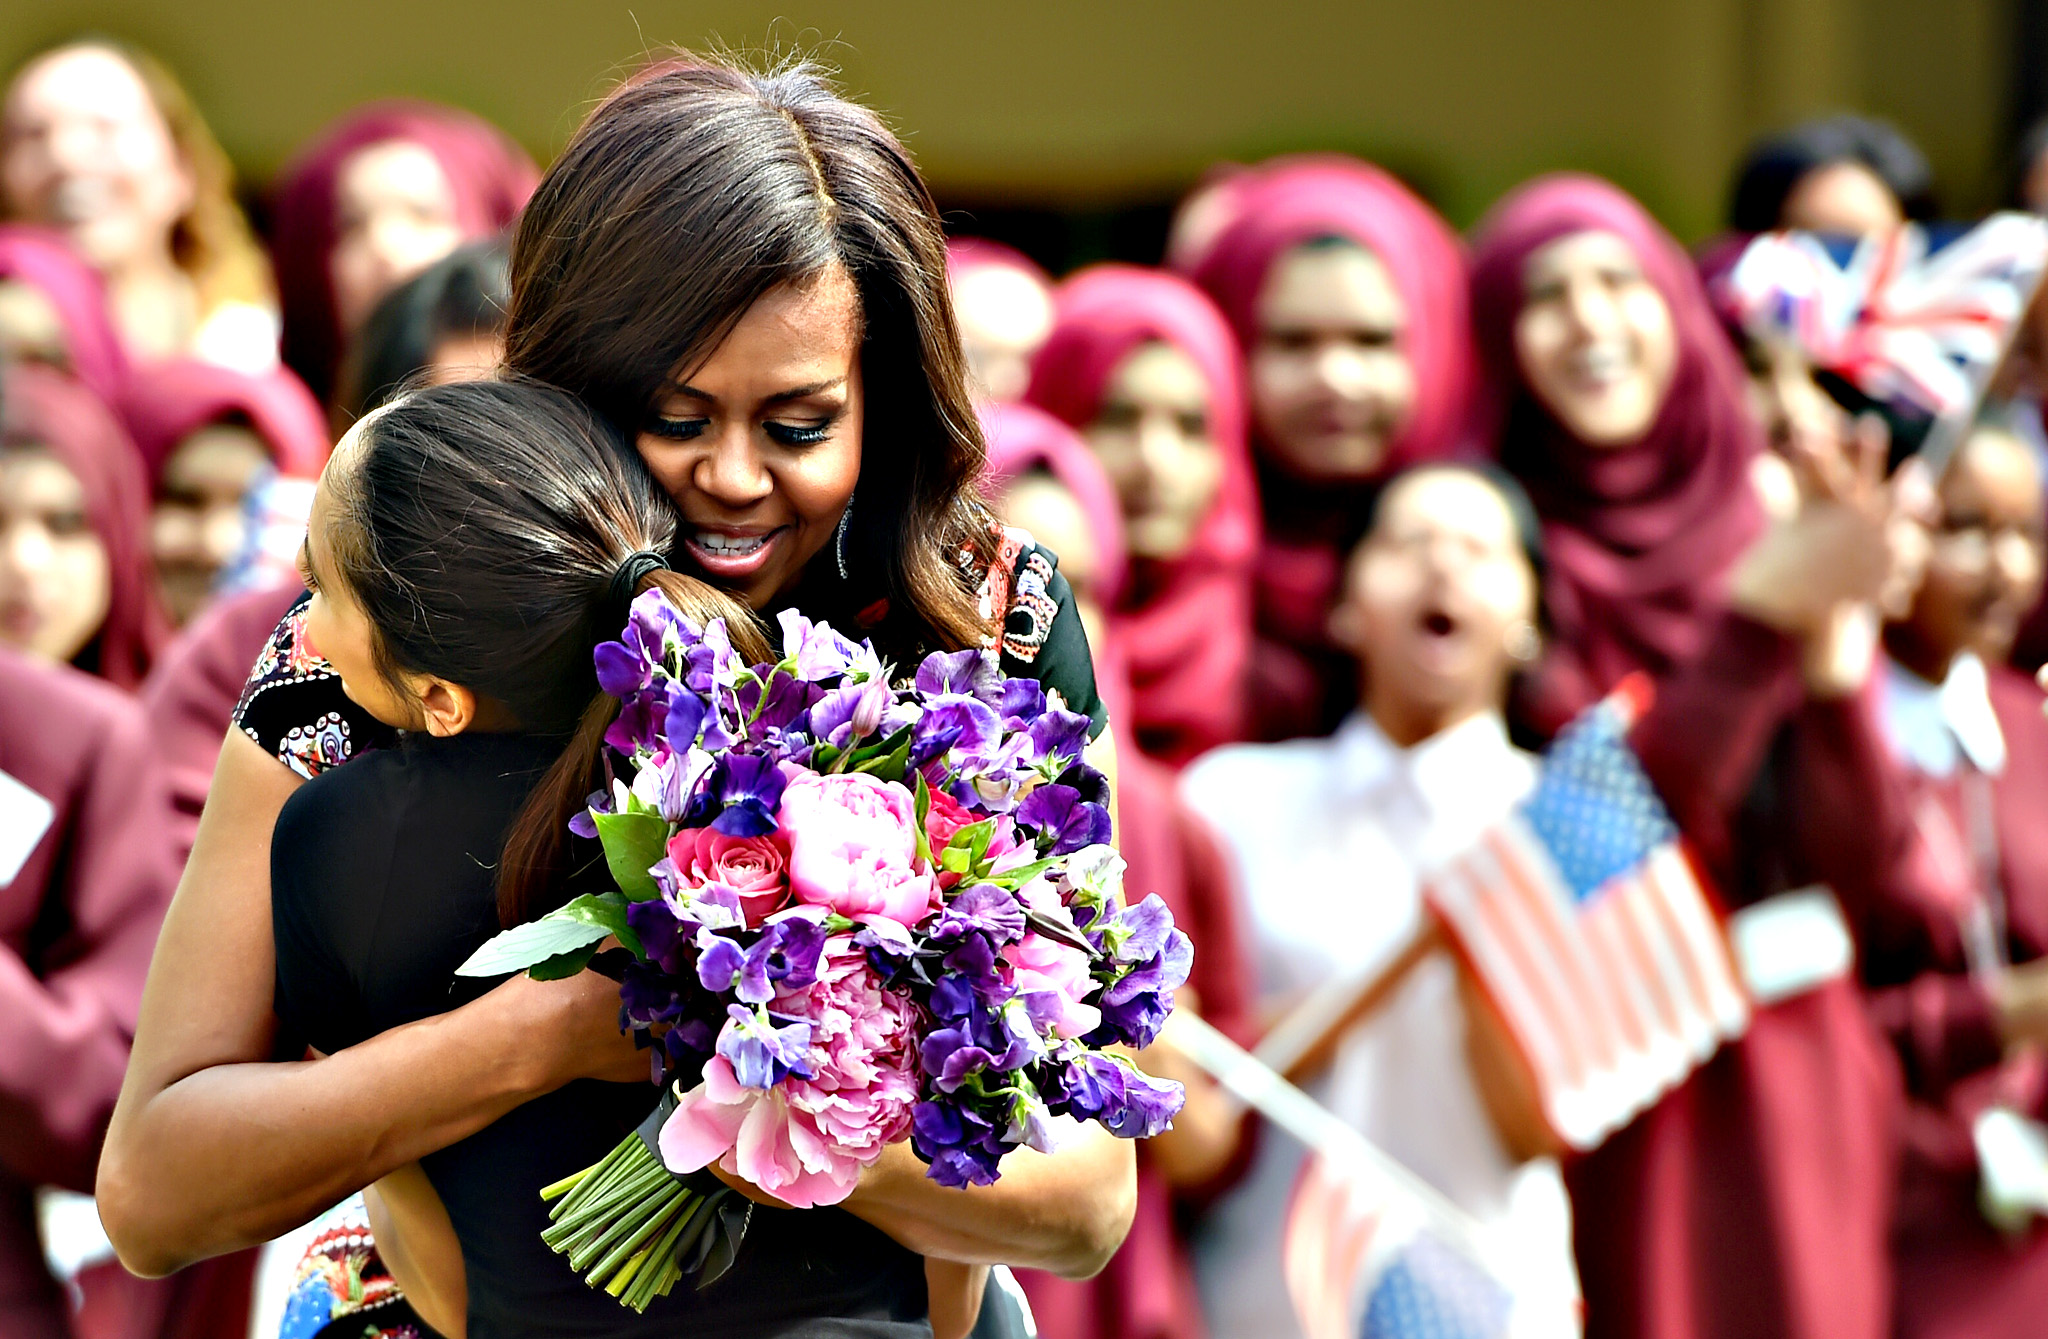 A student gives flowers to, embraces and welcomes with other young students US First Lady Michelle Obama in the courtyard before an event as part of the 'Let Girls Learn Initiative' at the Mulberry School for Girls on Tuesday in London, England. The US First Lady is travelling with her daughters, Malia and Sasha and her mother, Mrs. Marian Robinson, to continue a global tour promoting her 'Let Girls Learn Initiative'. The event at the school was to discuss how the UK and USA are working together to expand girl's education around the world